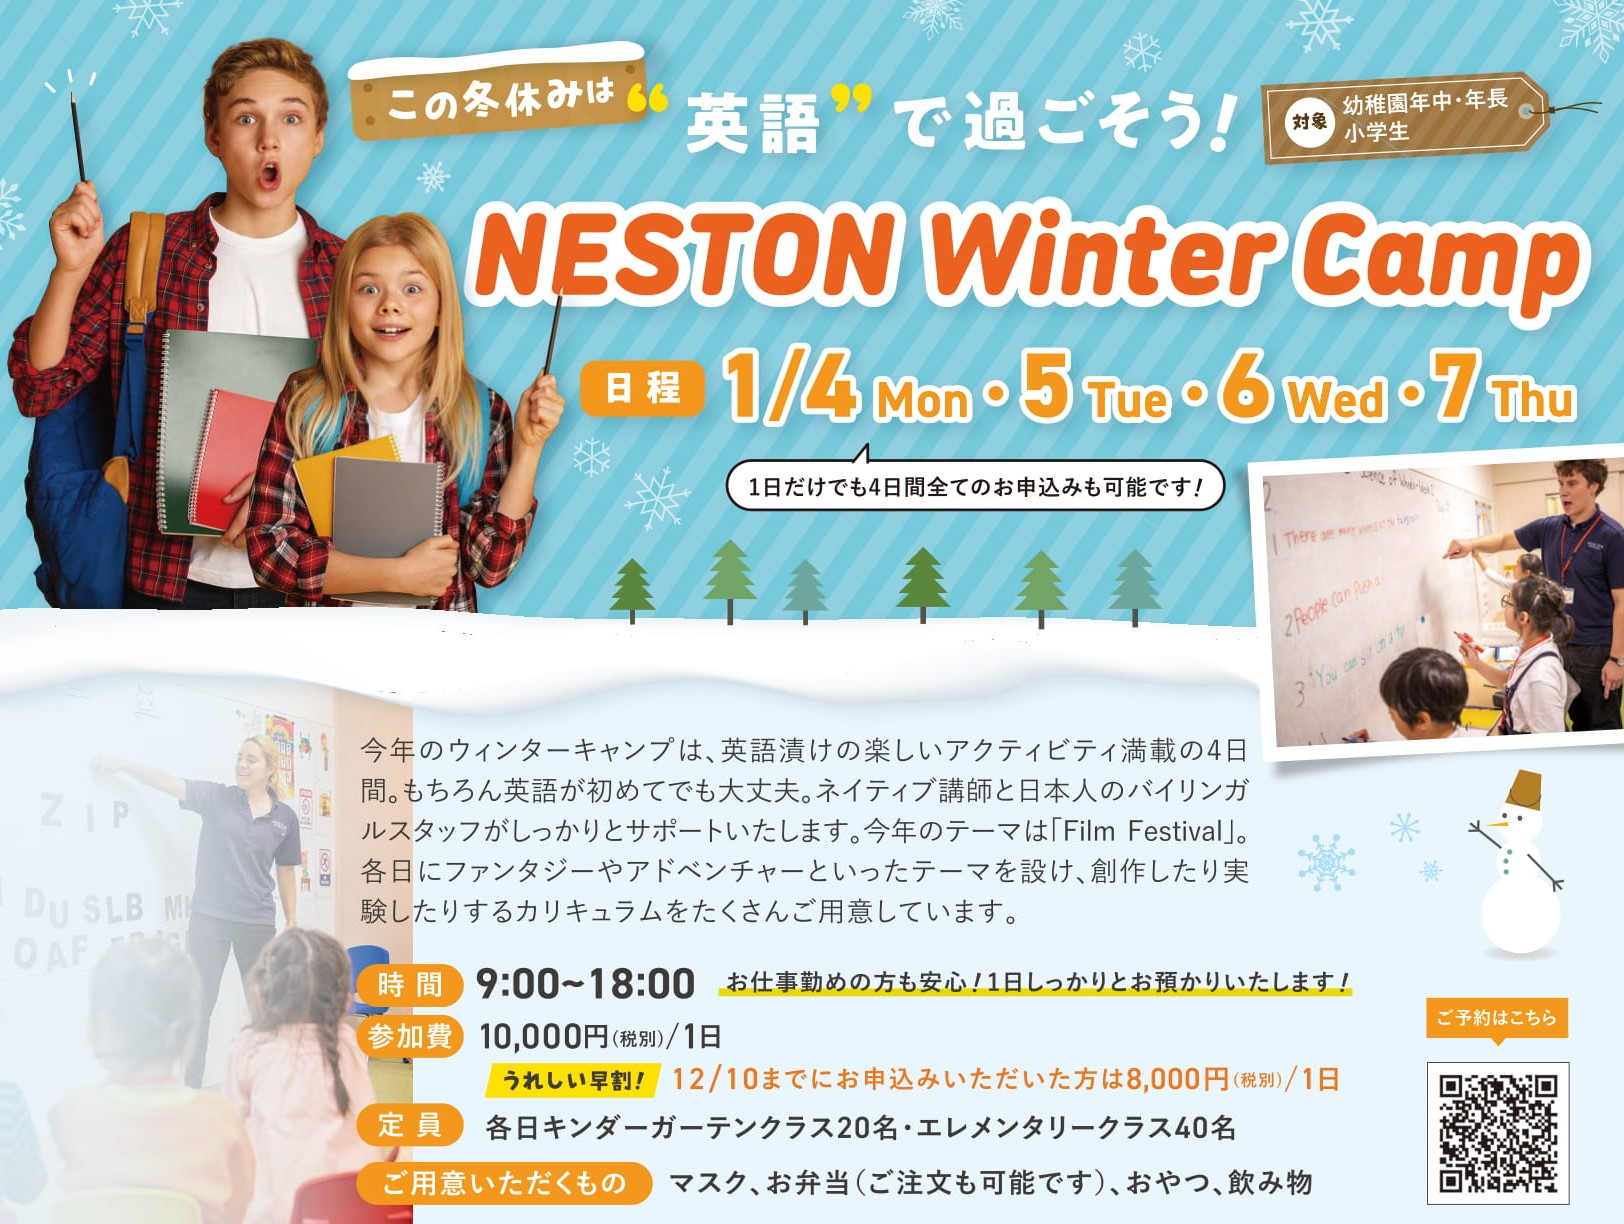 NESTON Winter Camp